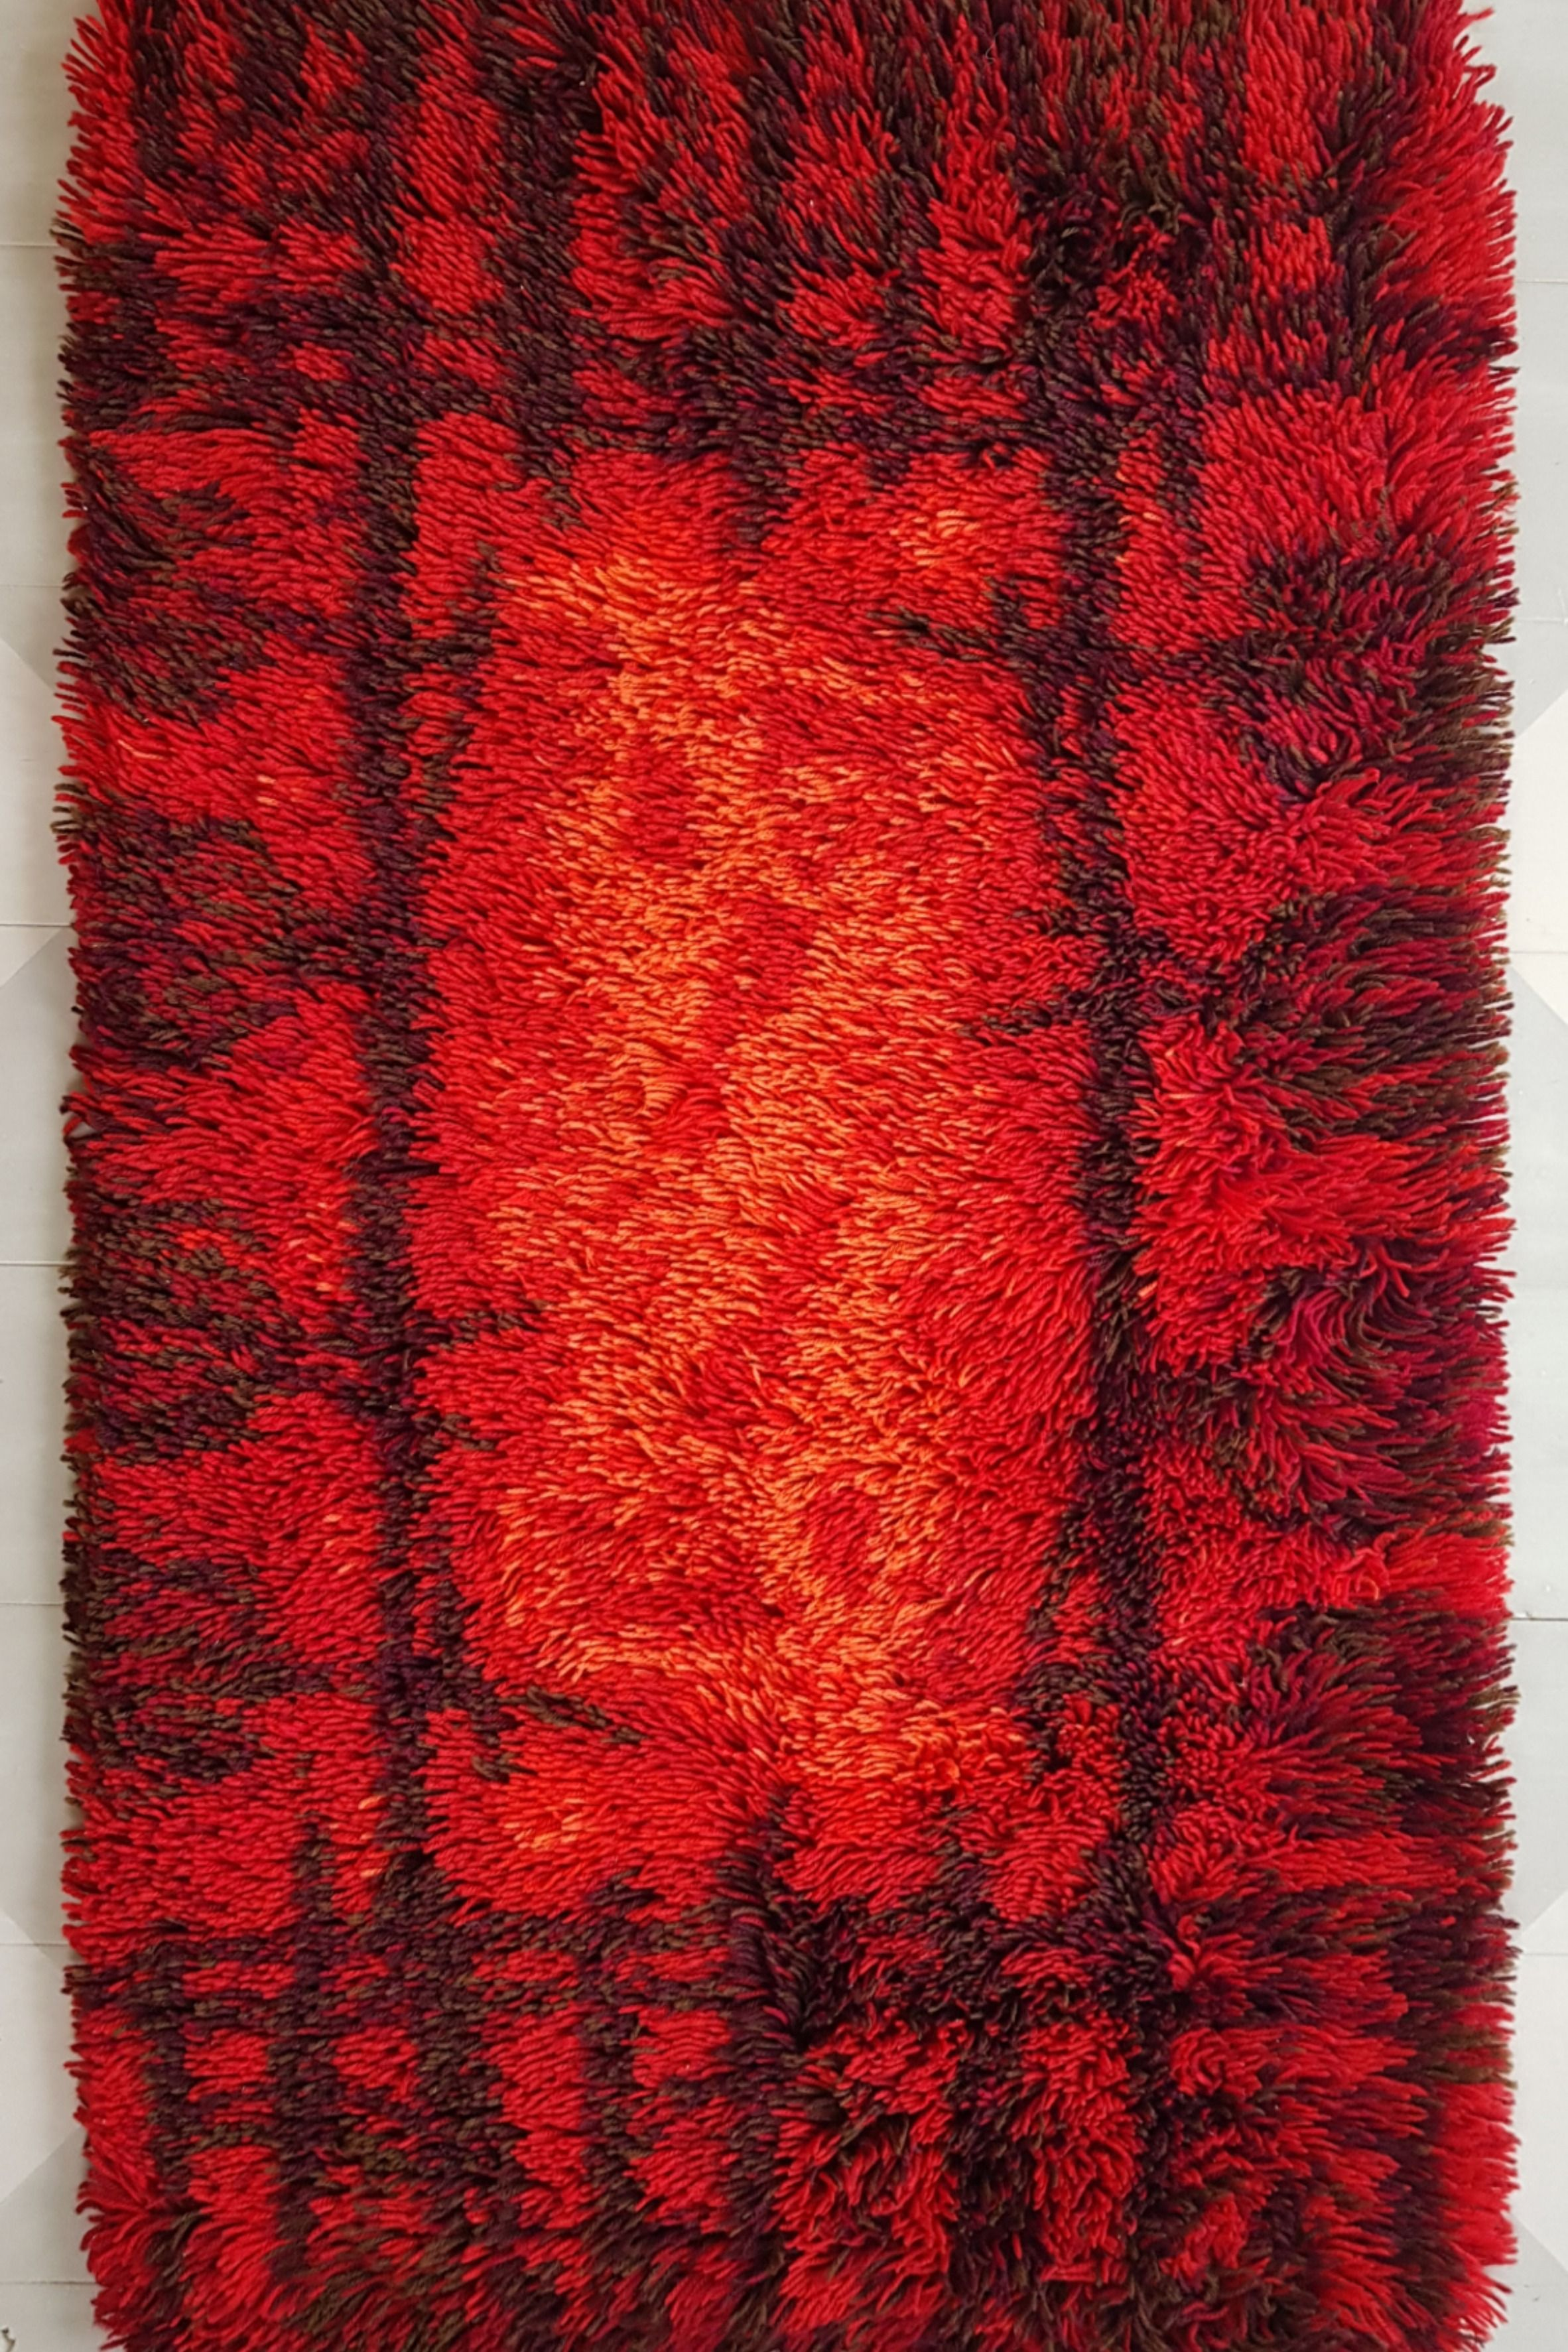 Fire Patterned Scandinavian Style Rya Rug From Carnival Firth England 1960s 44x26 Inches 100 Wool In 2020 Rya Rug Scandinavian Style Scandinavian